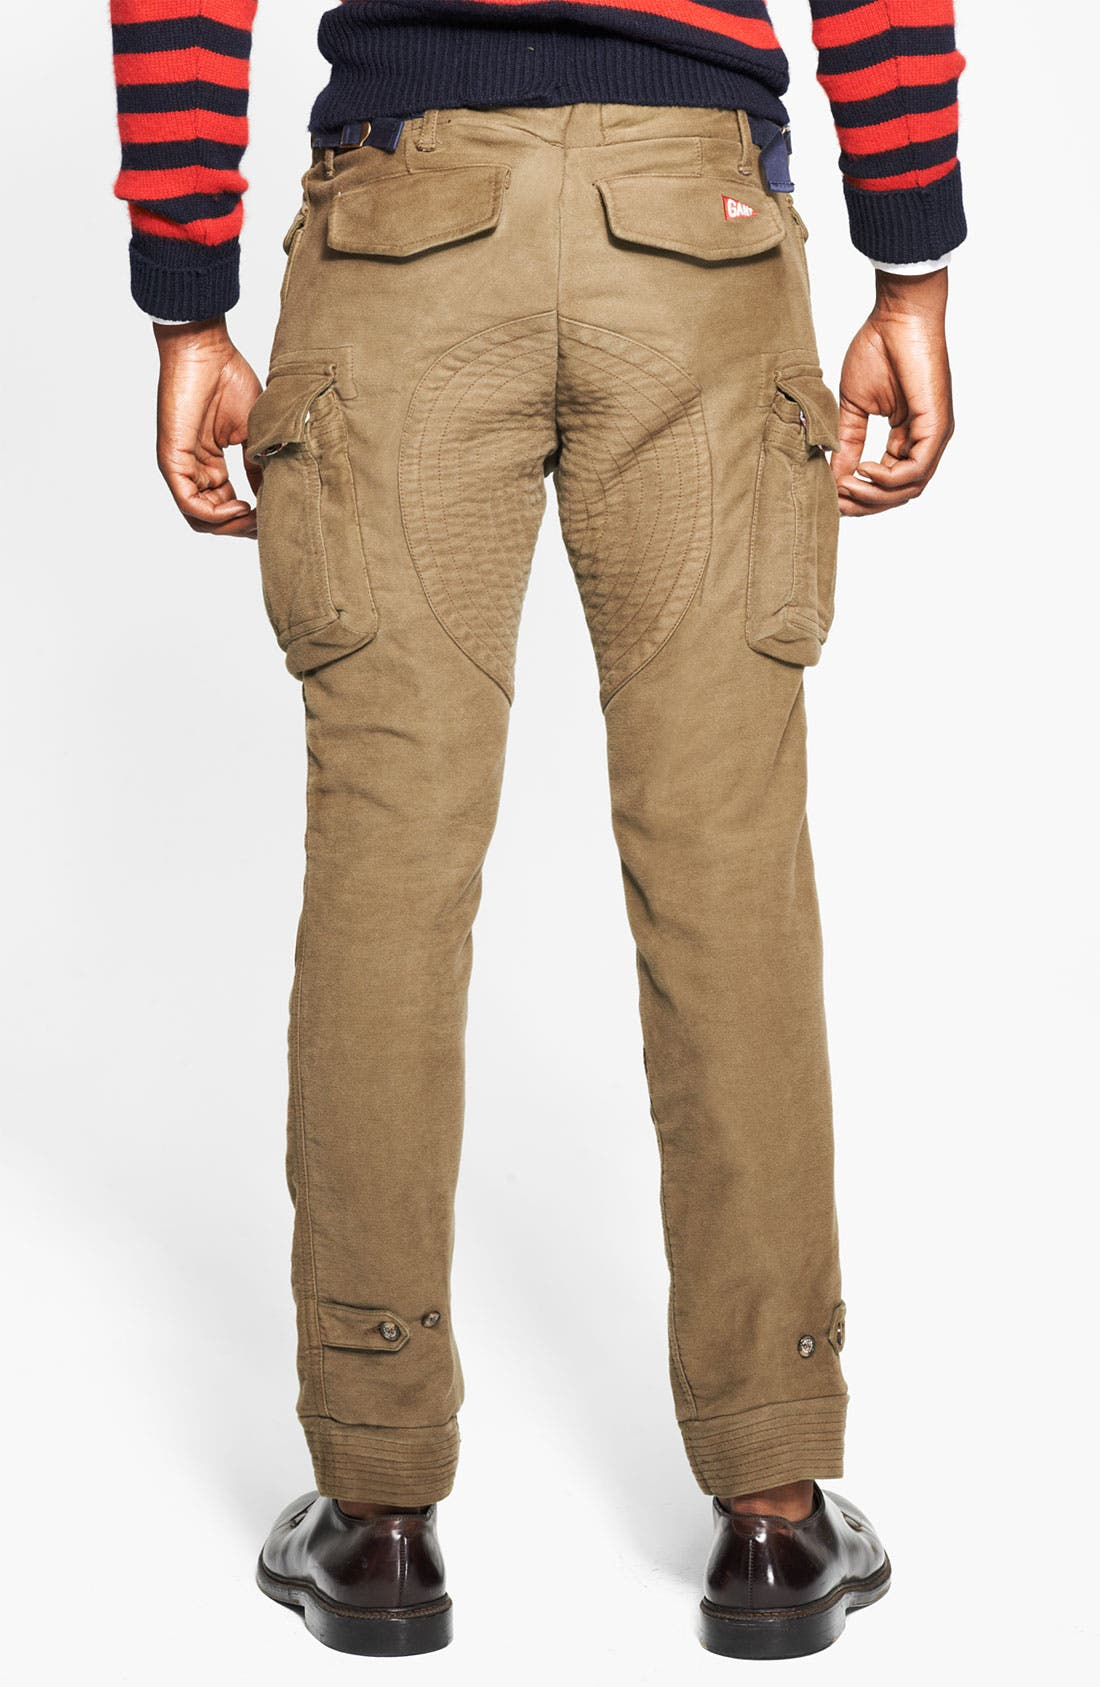 Skinny Moleskin Cotton Cargo Pants,                             Alternate thumbnail 3, color,                             301